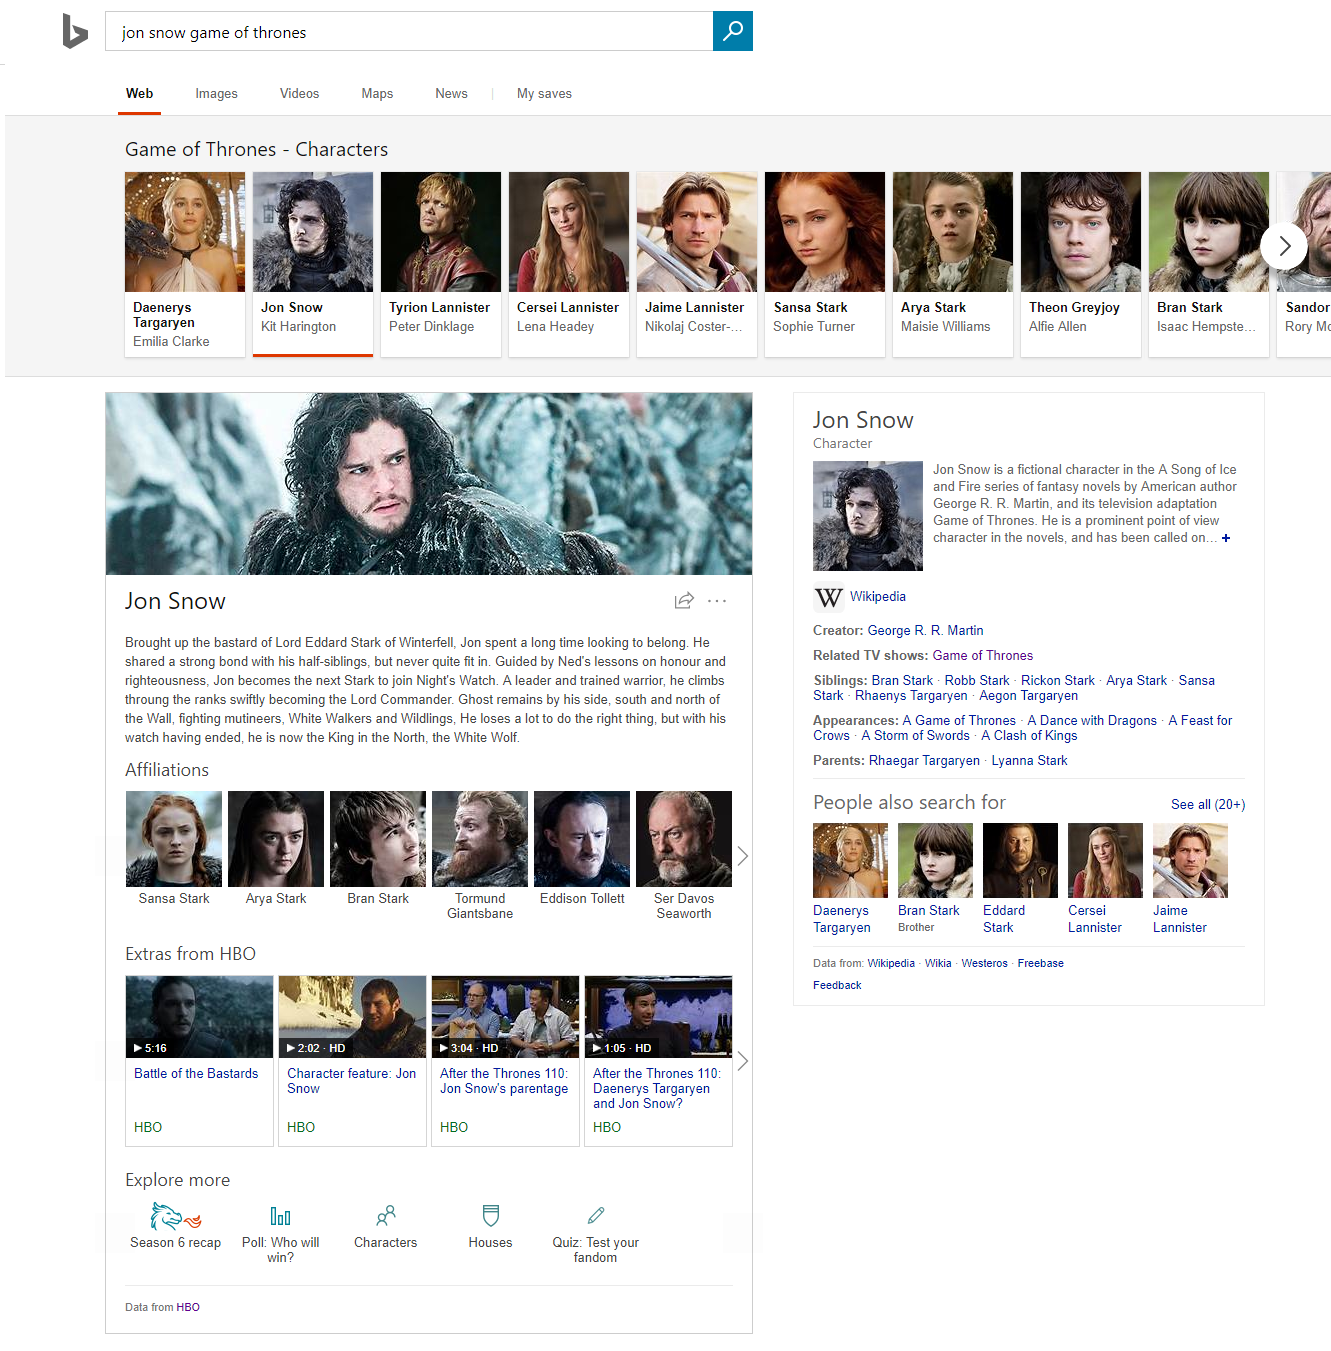 jon snow game of thrones query